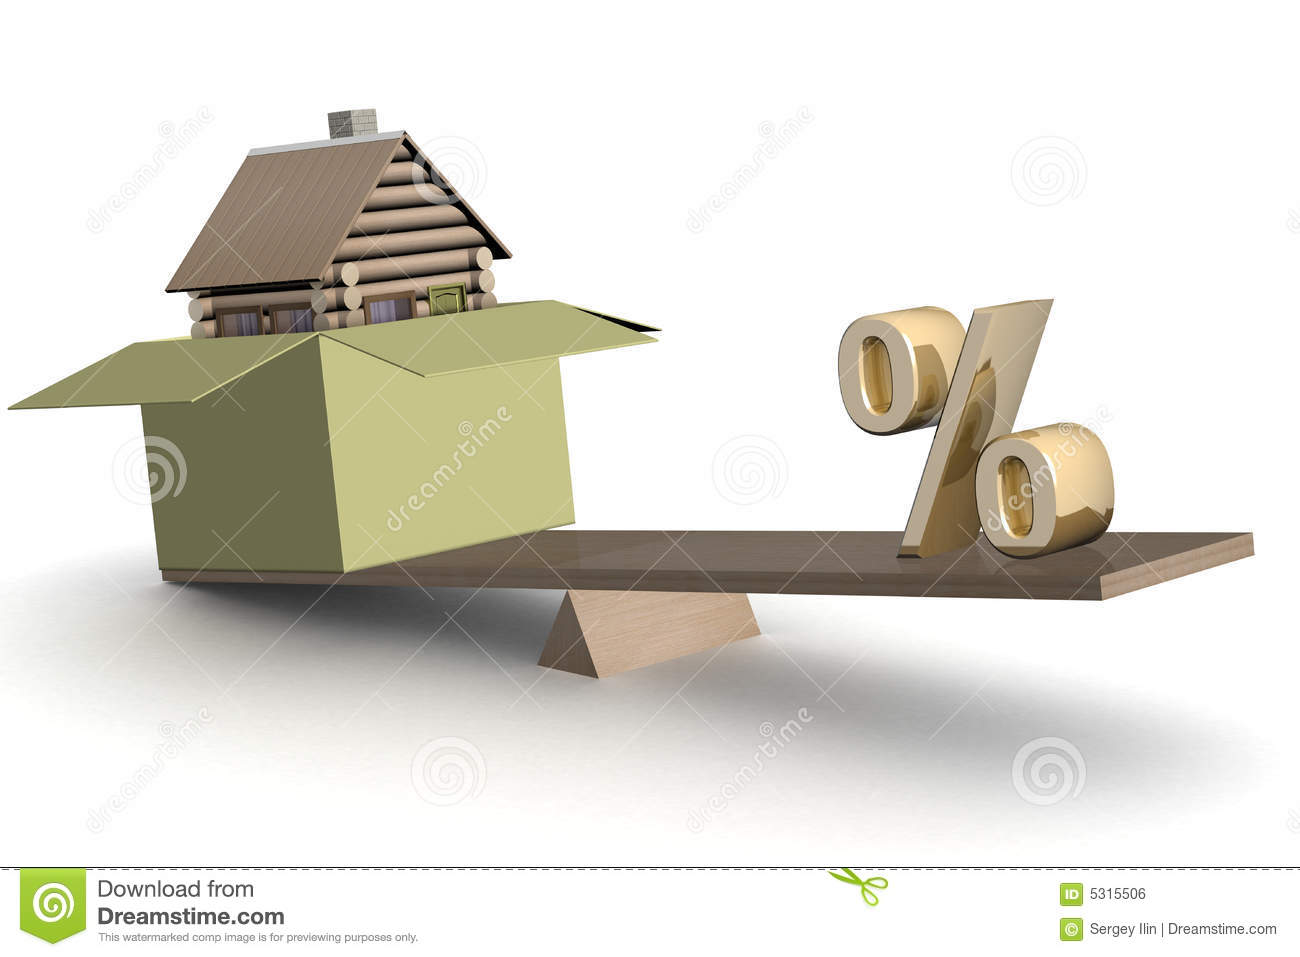 Royalty Free Stock Image: House in box and percent on scales.